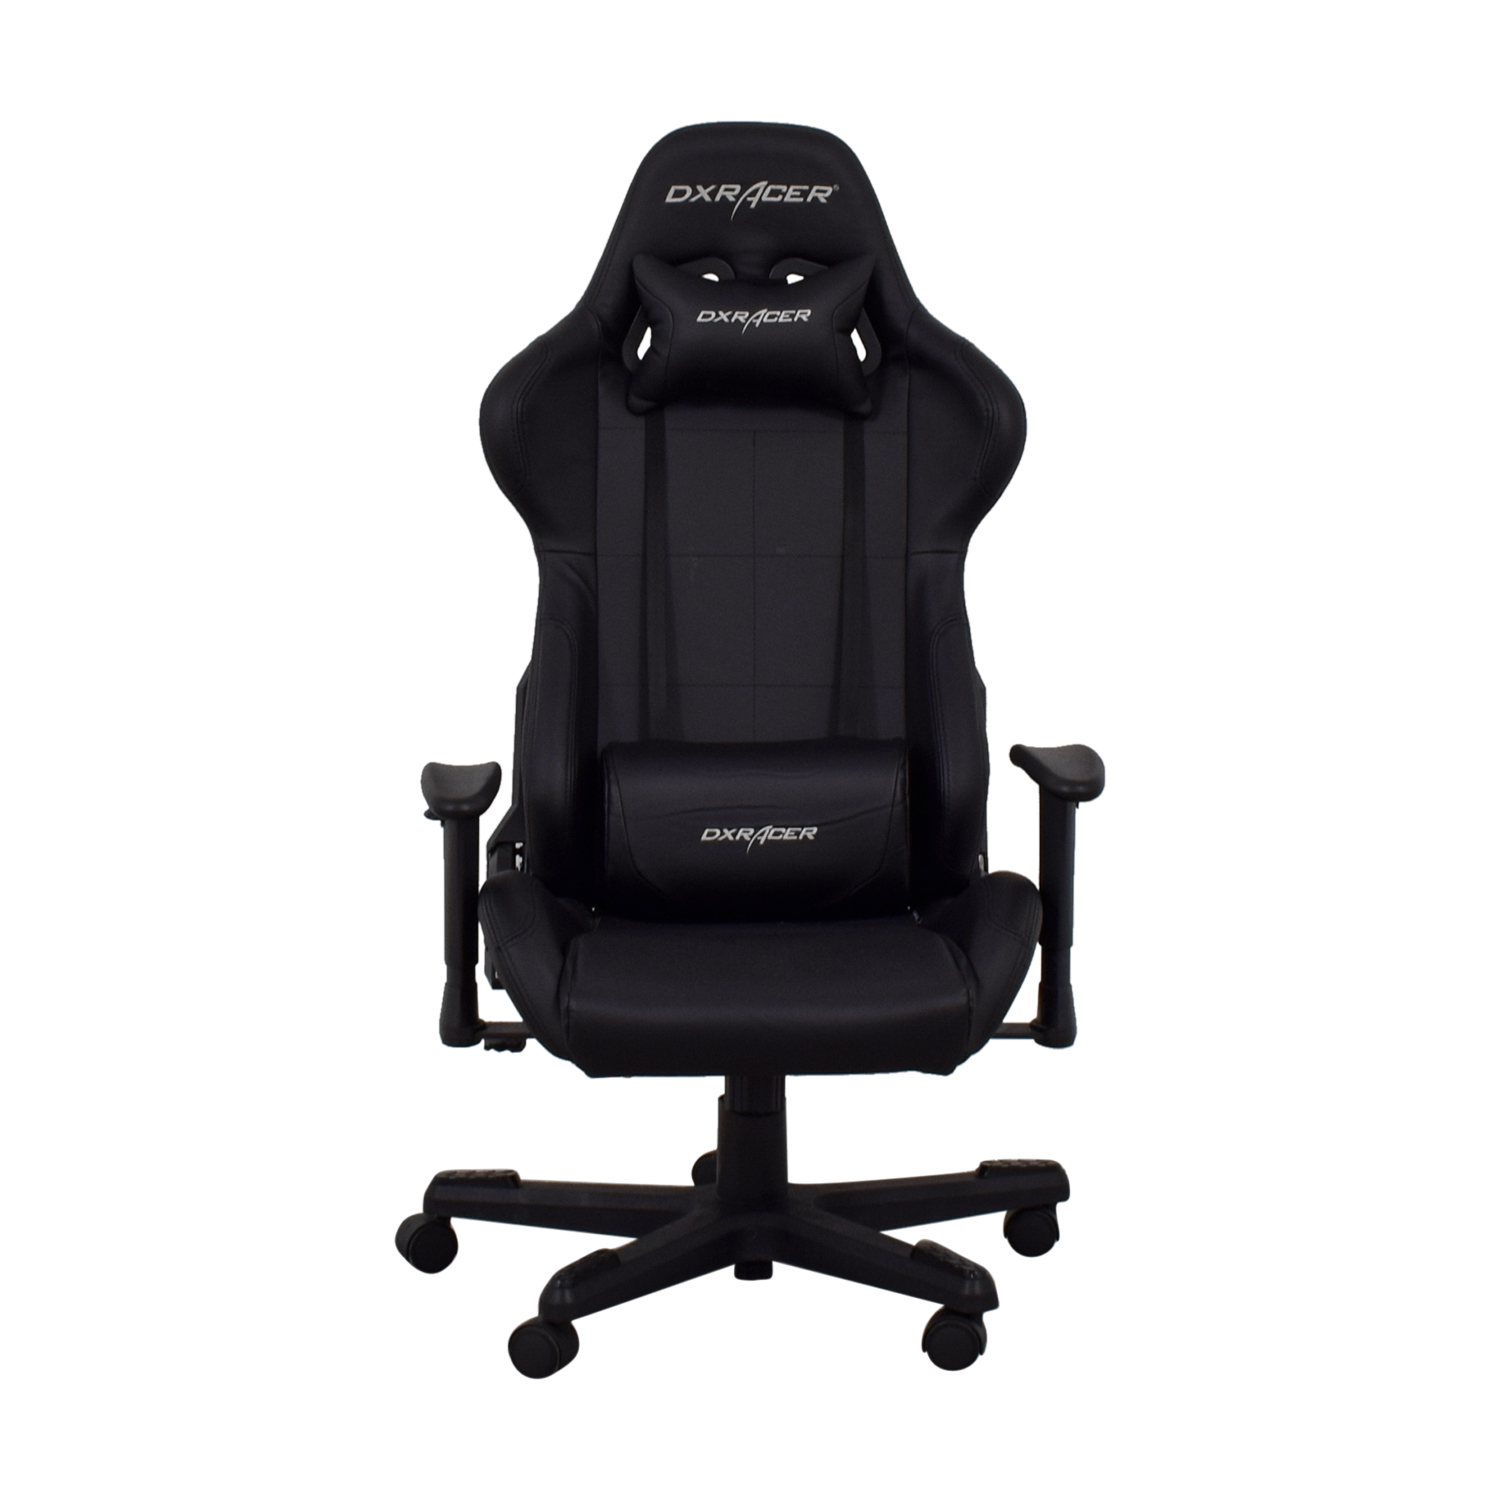 Dxracer Office Chair 76 Off Dxracer Dxracer Formula Series Ergonomic Highback Gaming Chair With Lumbar Support Chairs